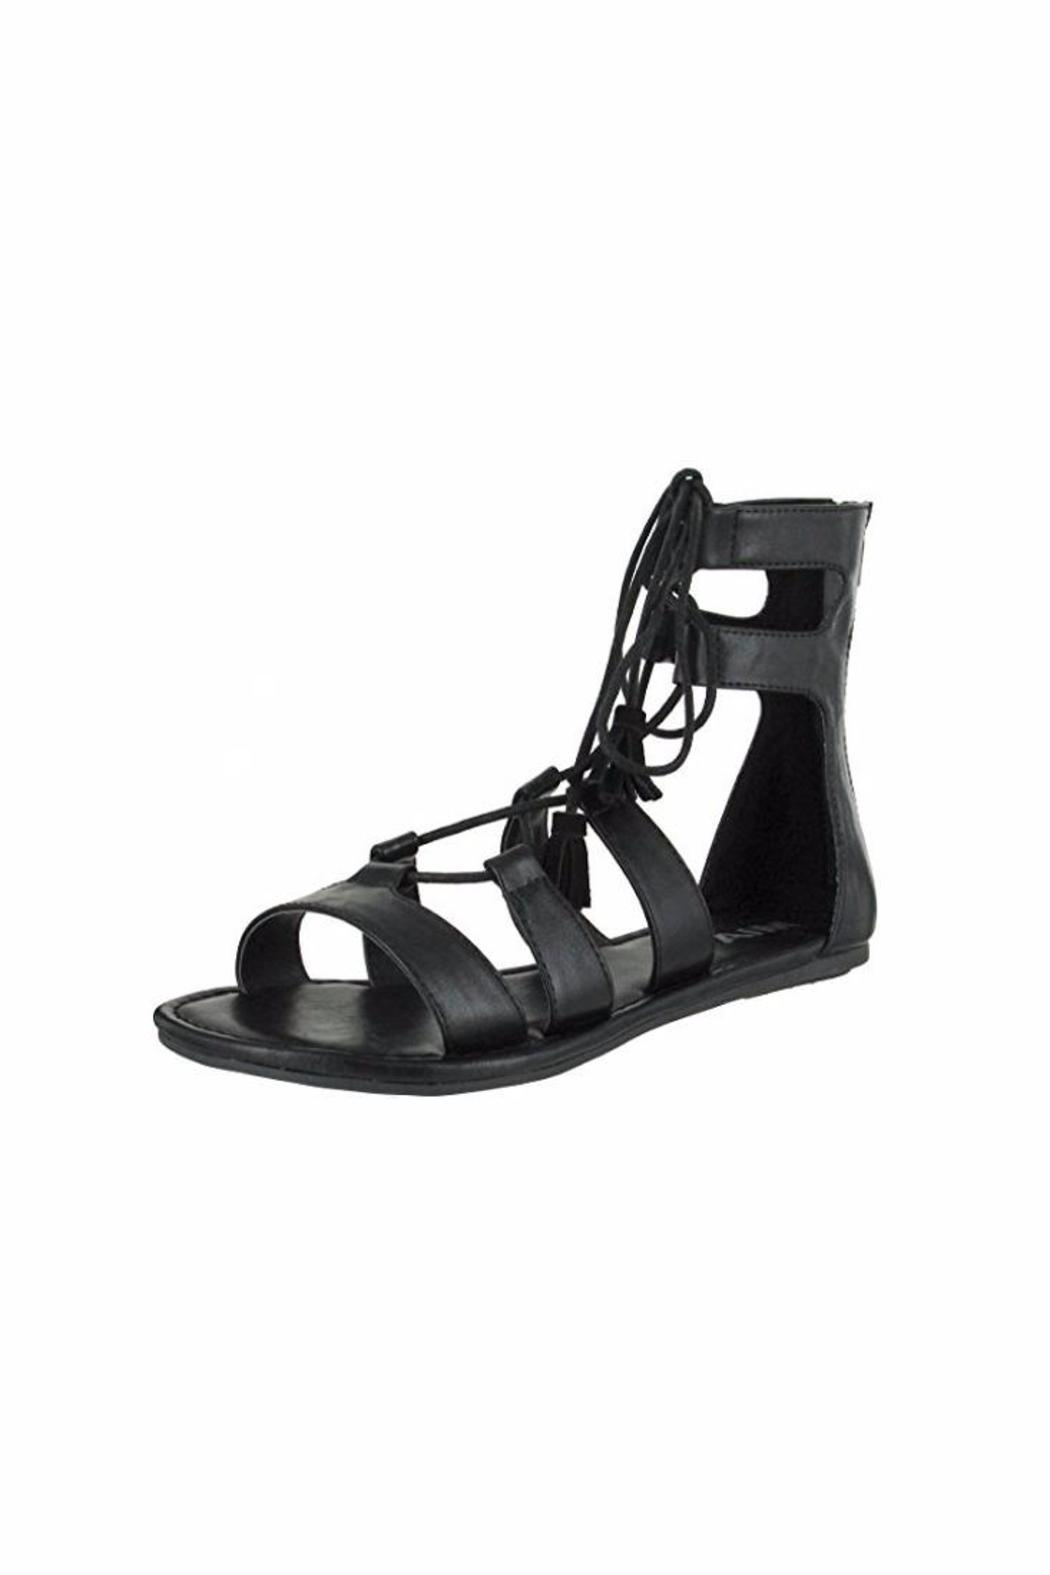 eea7e59870439 MIA Shoes Mia Ozie Sandals from Miami by Neptunes — Shoptiques